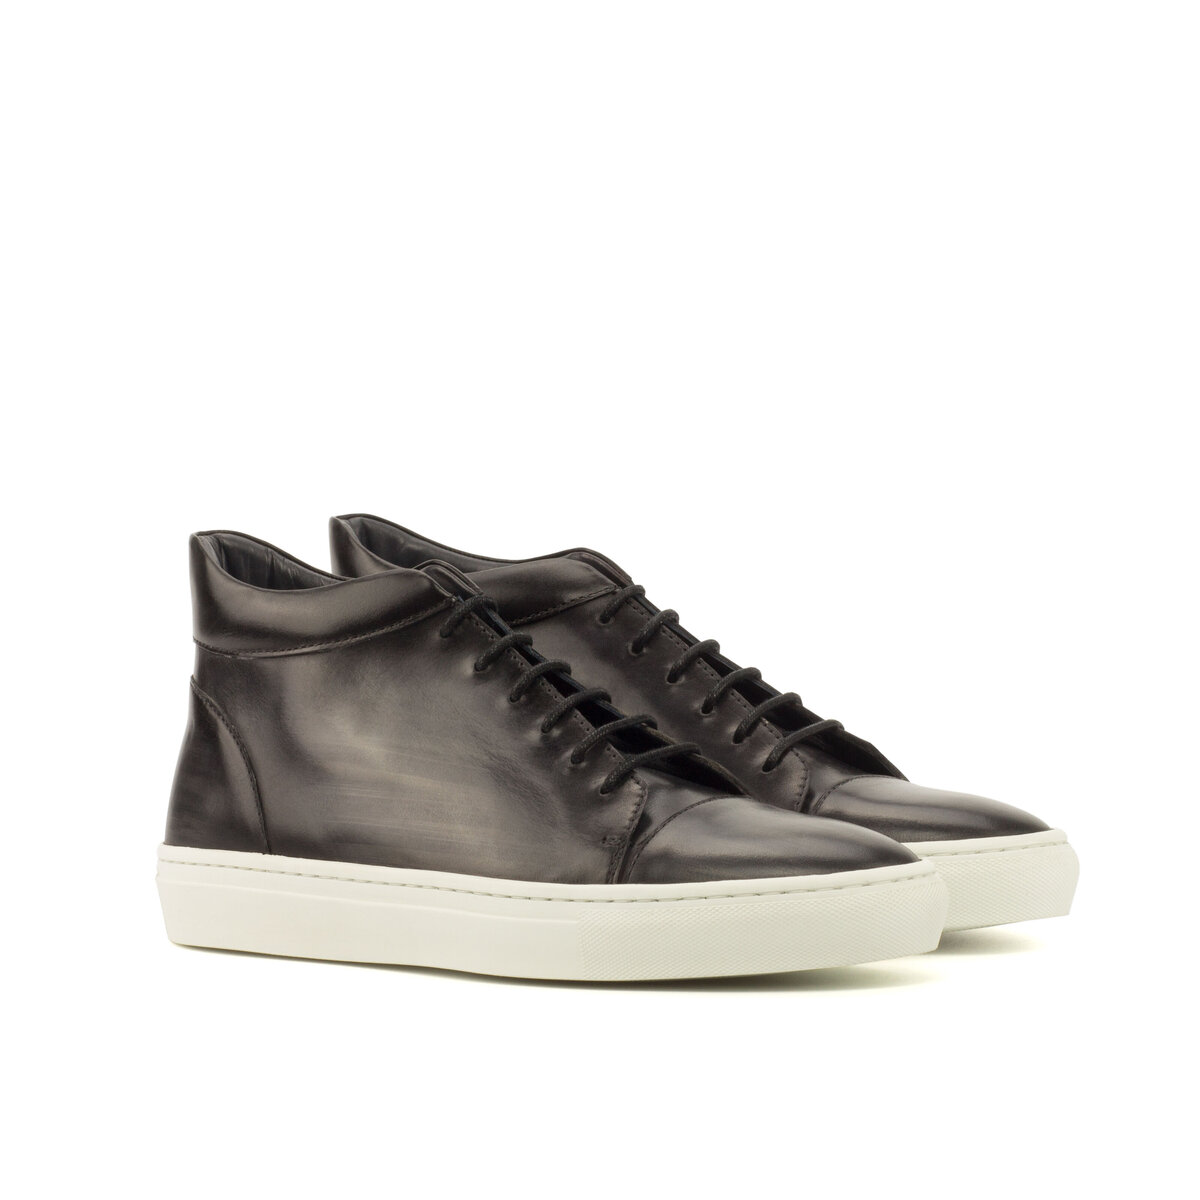 gps-shoes-high-top-patina-grey-box calf black-3